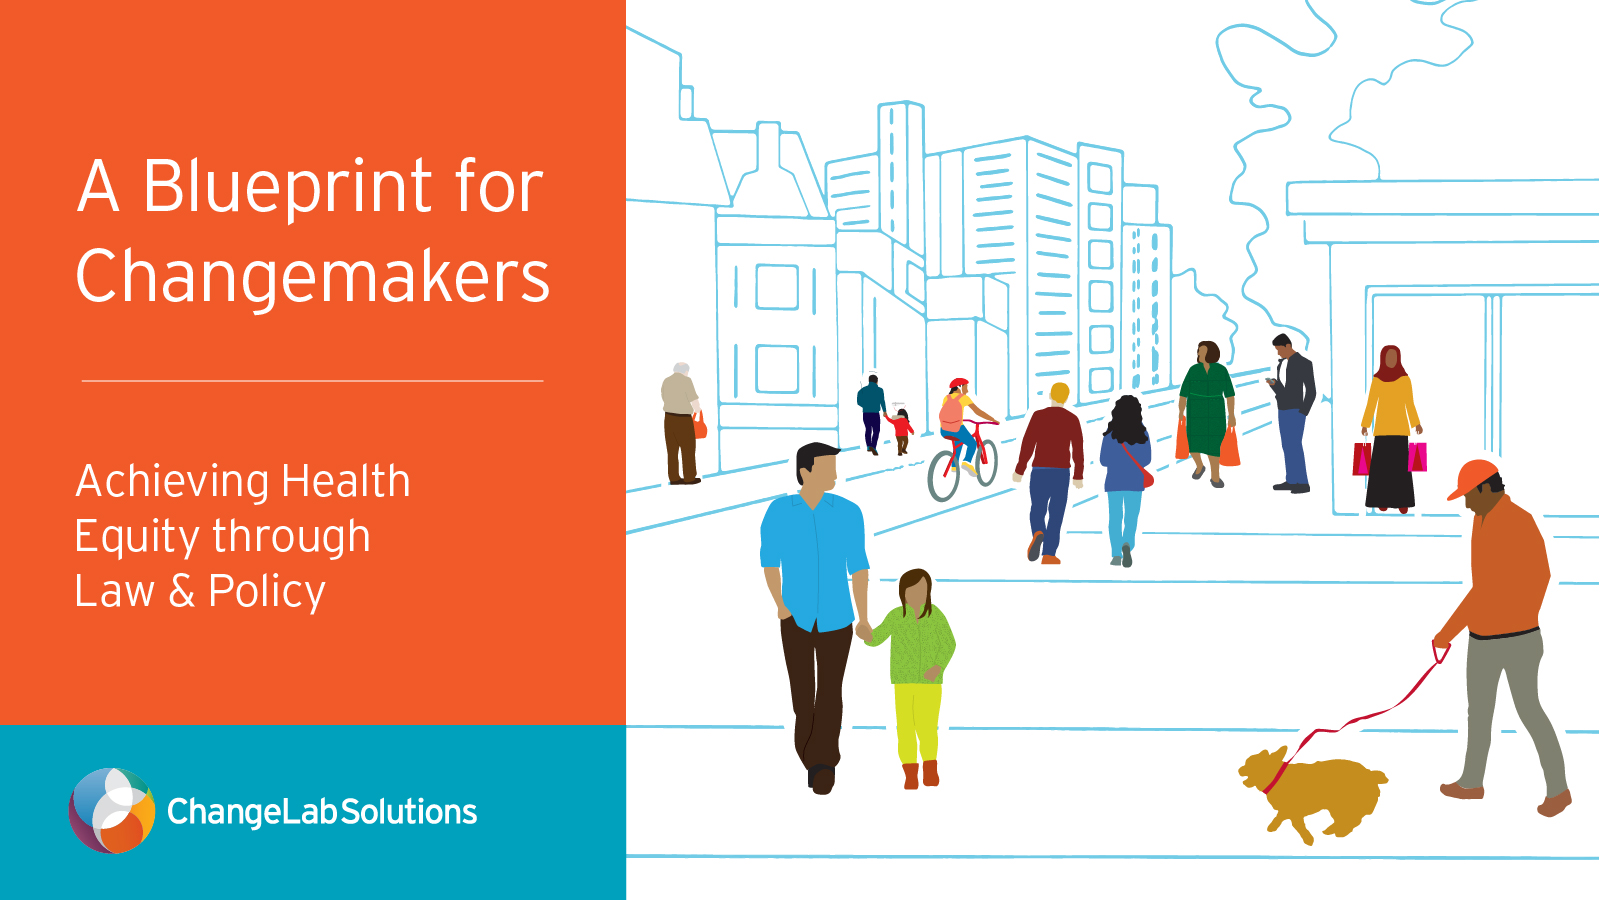 A Blueprint for Changemakers: Achieving Health Equity Through Law & Policy